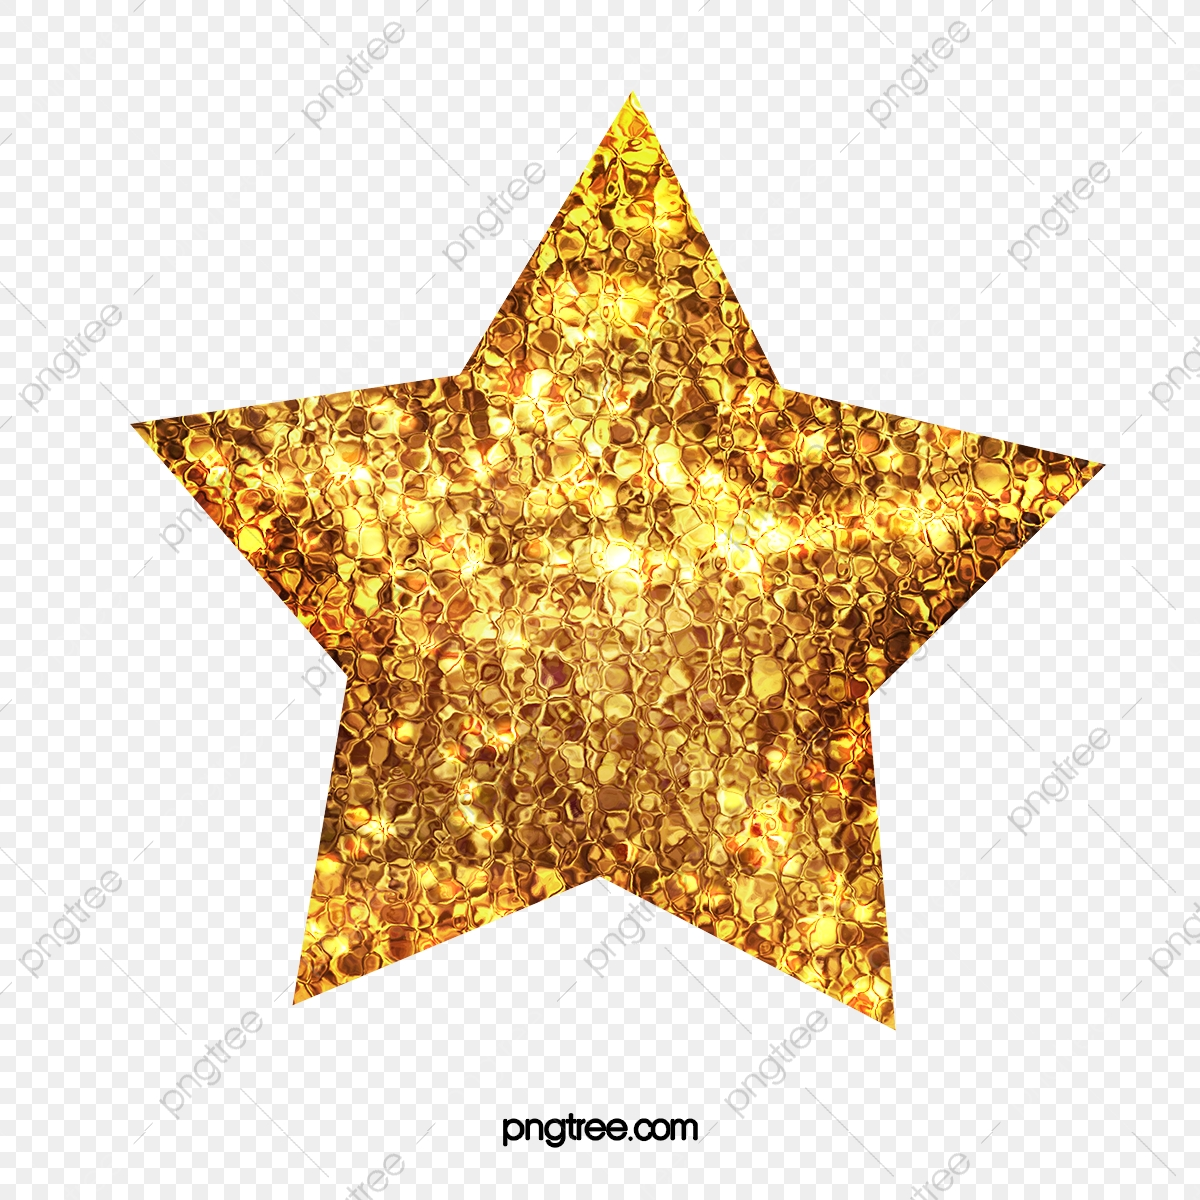 Gold Stars, Golden, Golden Star, Star PNG Transparent Image and